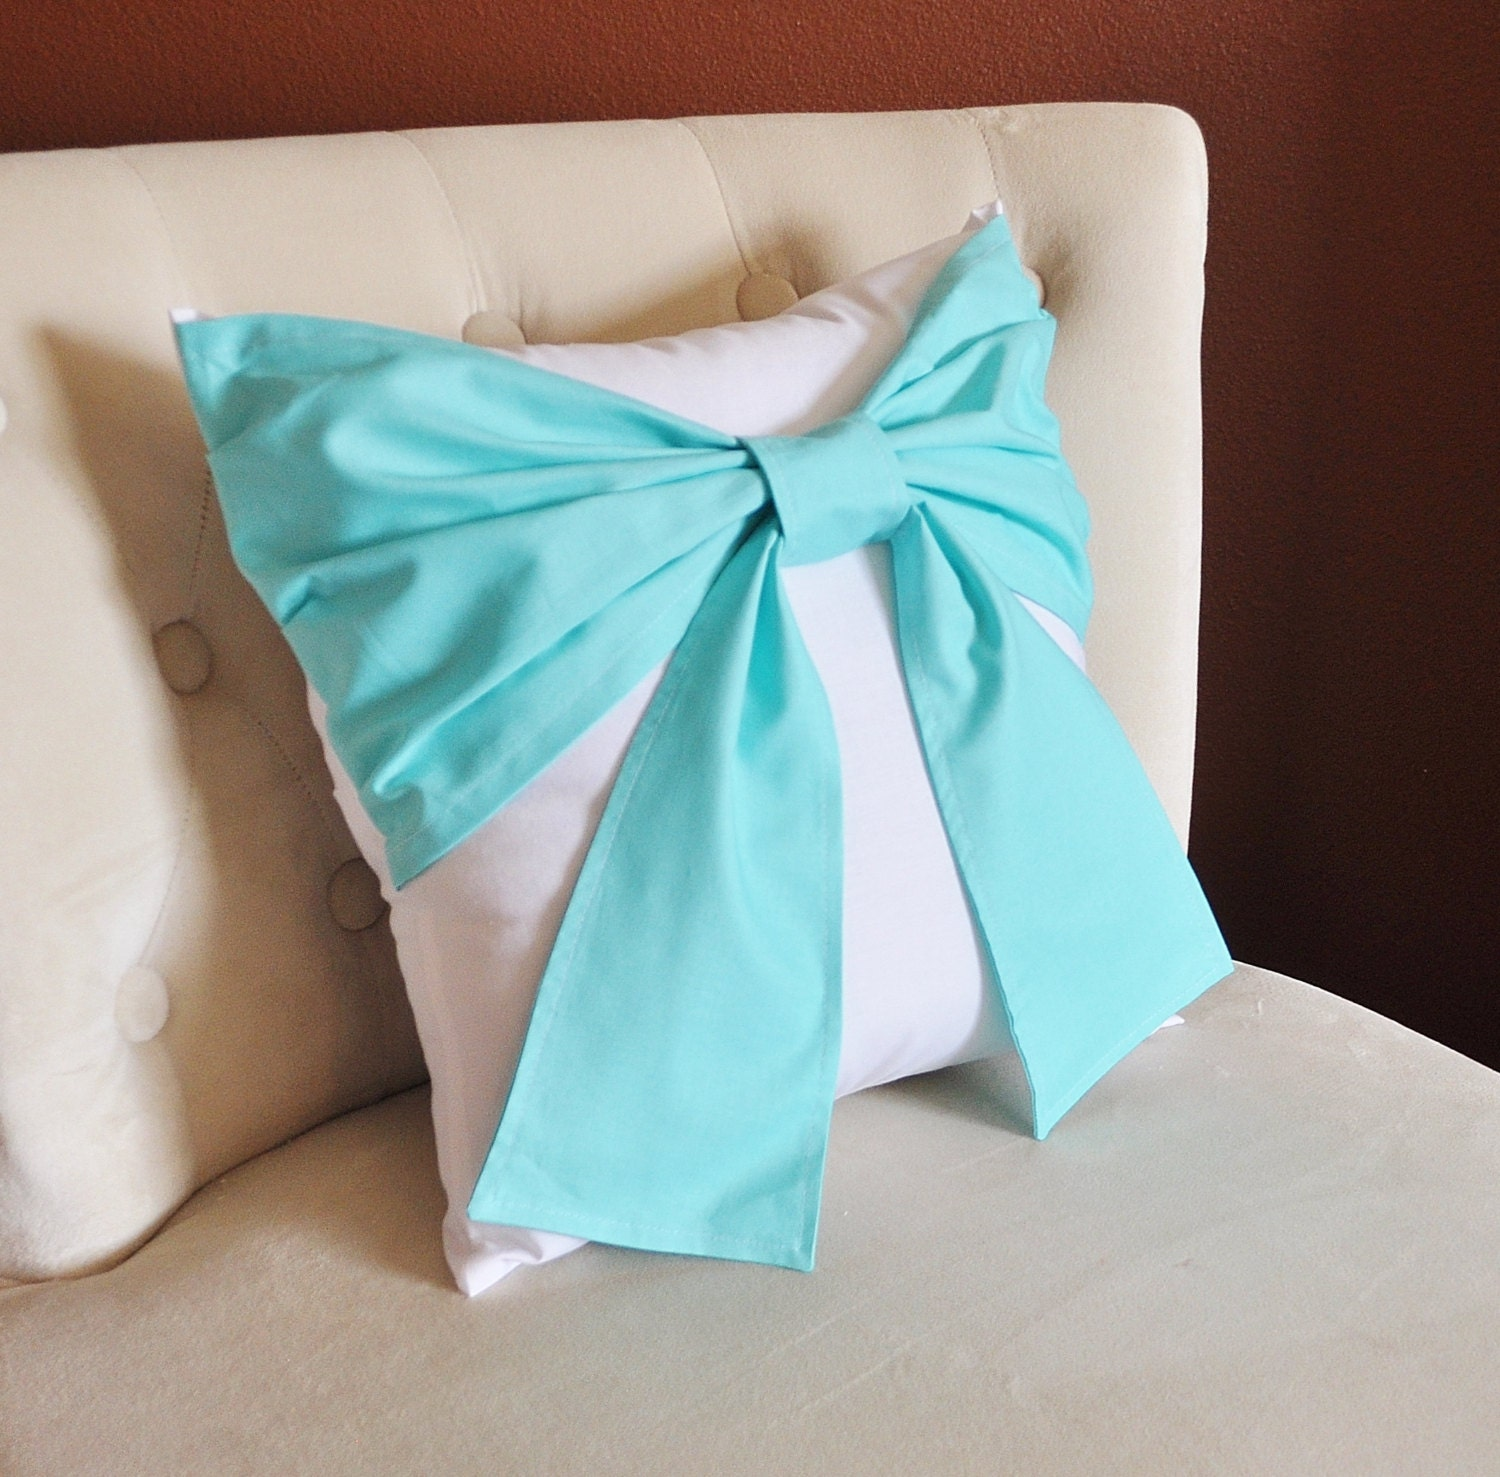 Throw Pillow With Bow : Decorative Throw Pillow Bright Aqua Bow on White Pillow 14x14